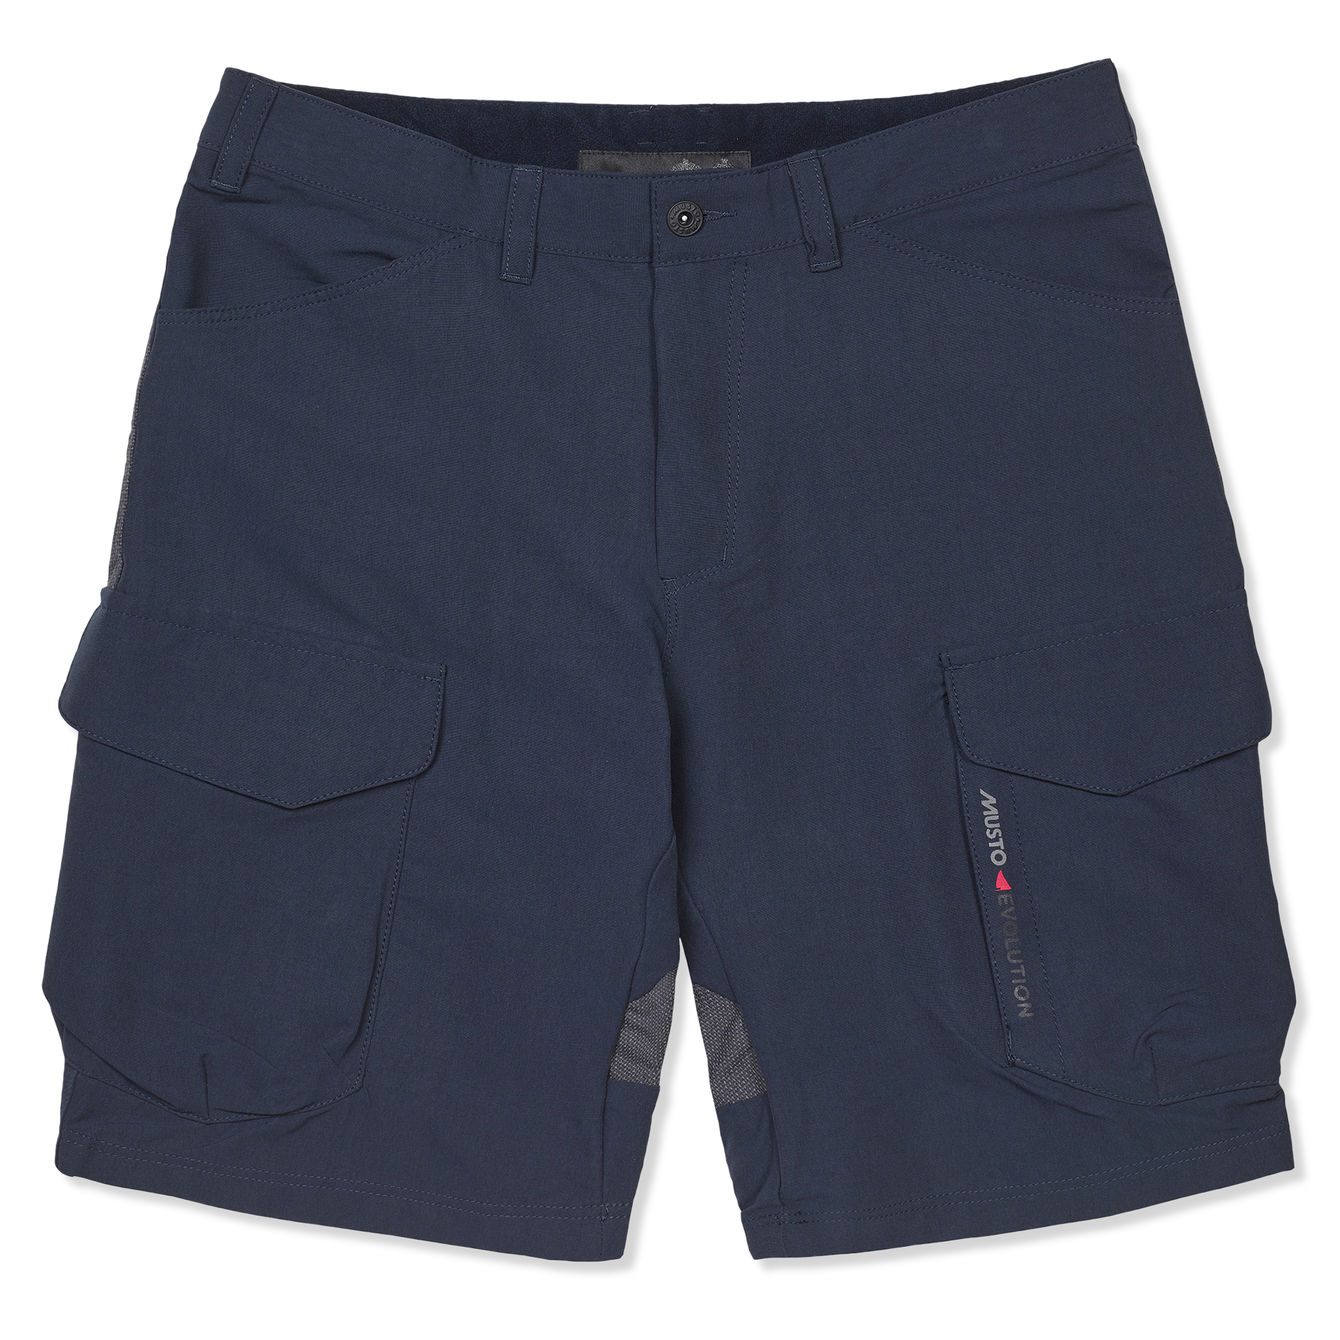 EVO PERFORMANCE UV SHORTS